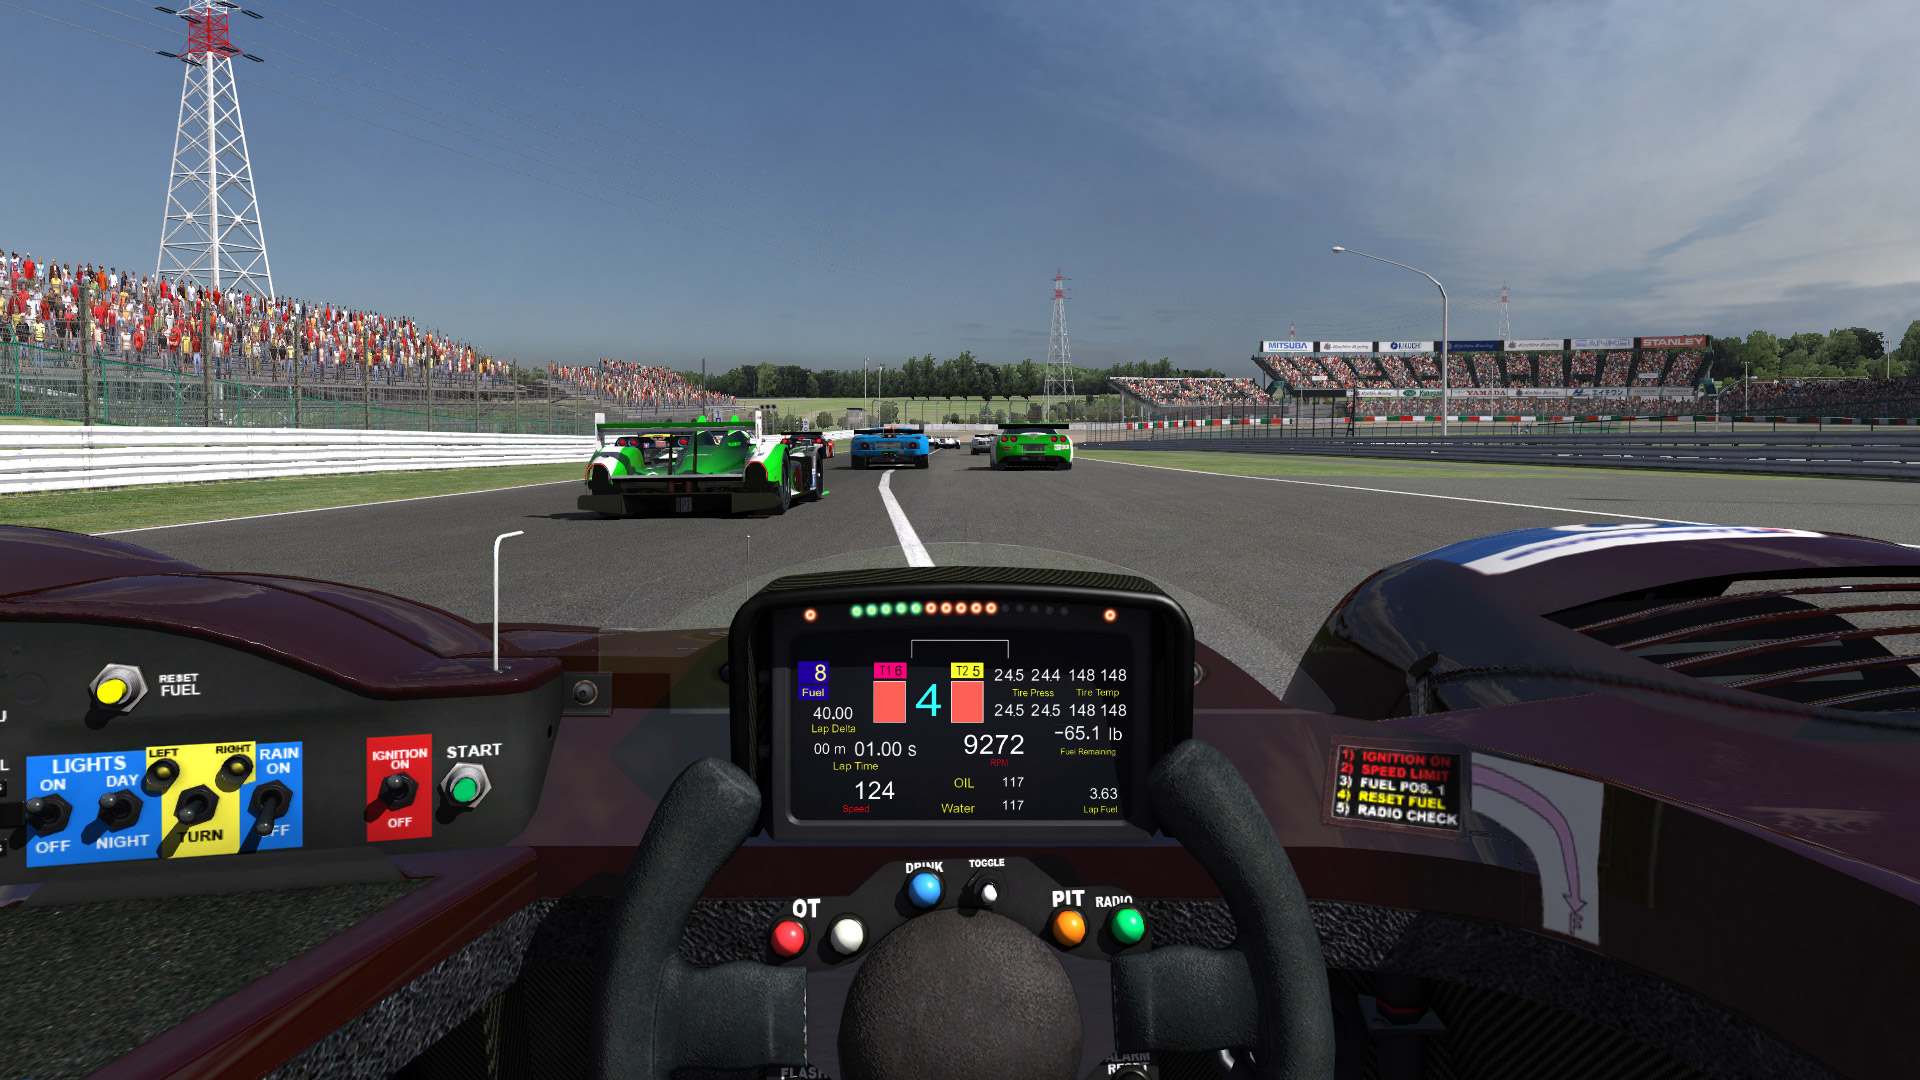 'iRacing' to Add HTC Vive Support in September Update